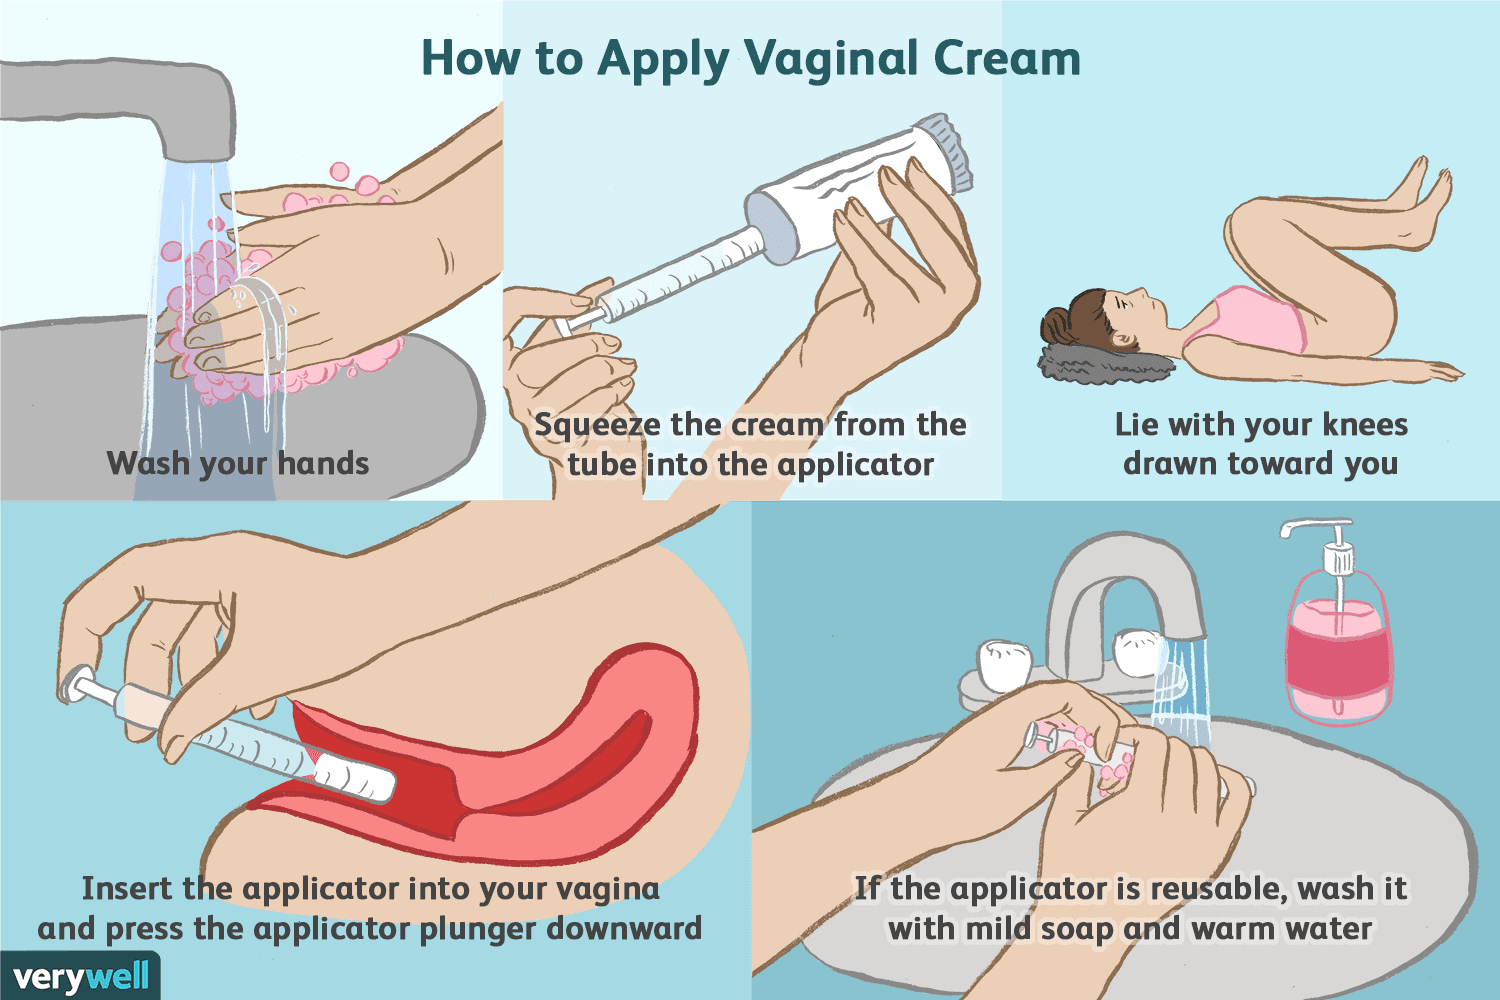 How To Apply Vaginal Cream Properly